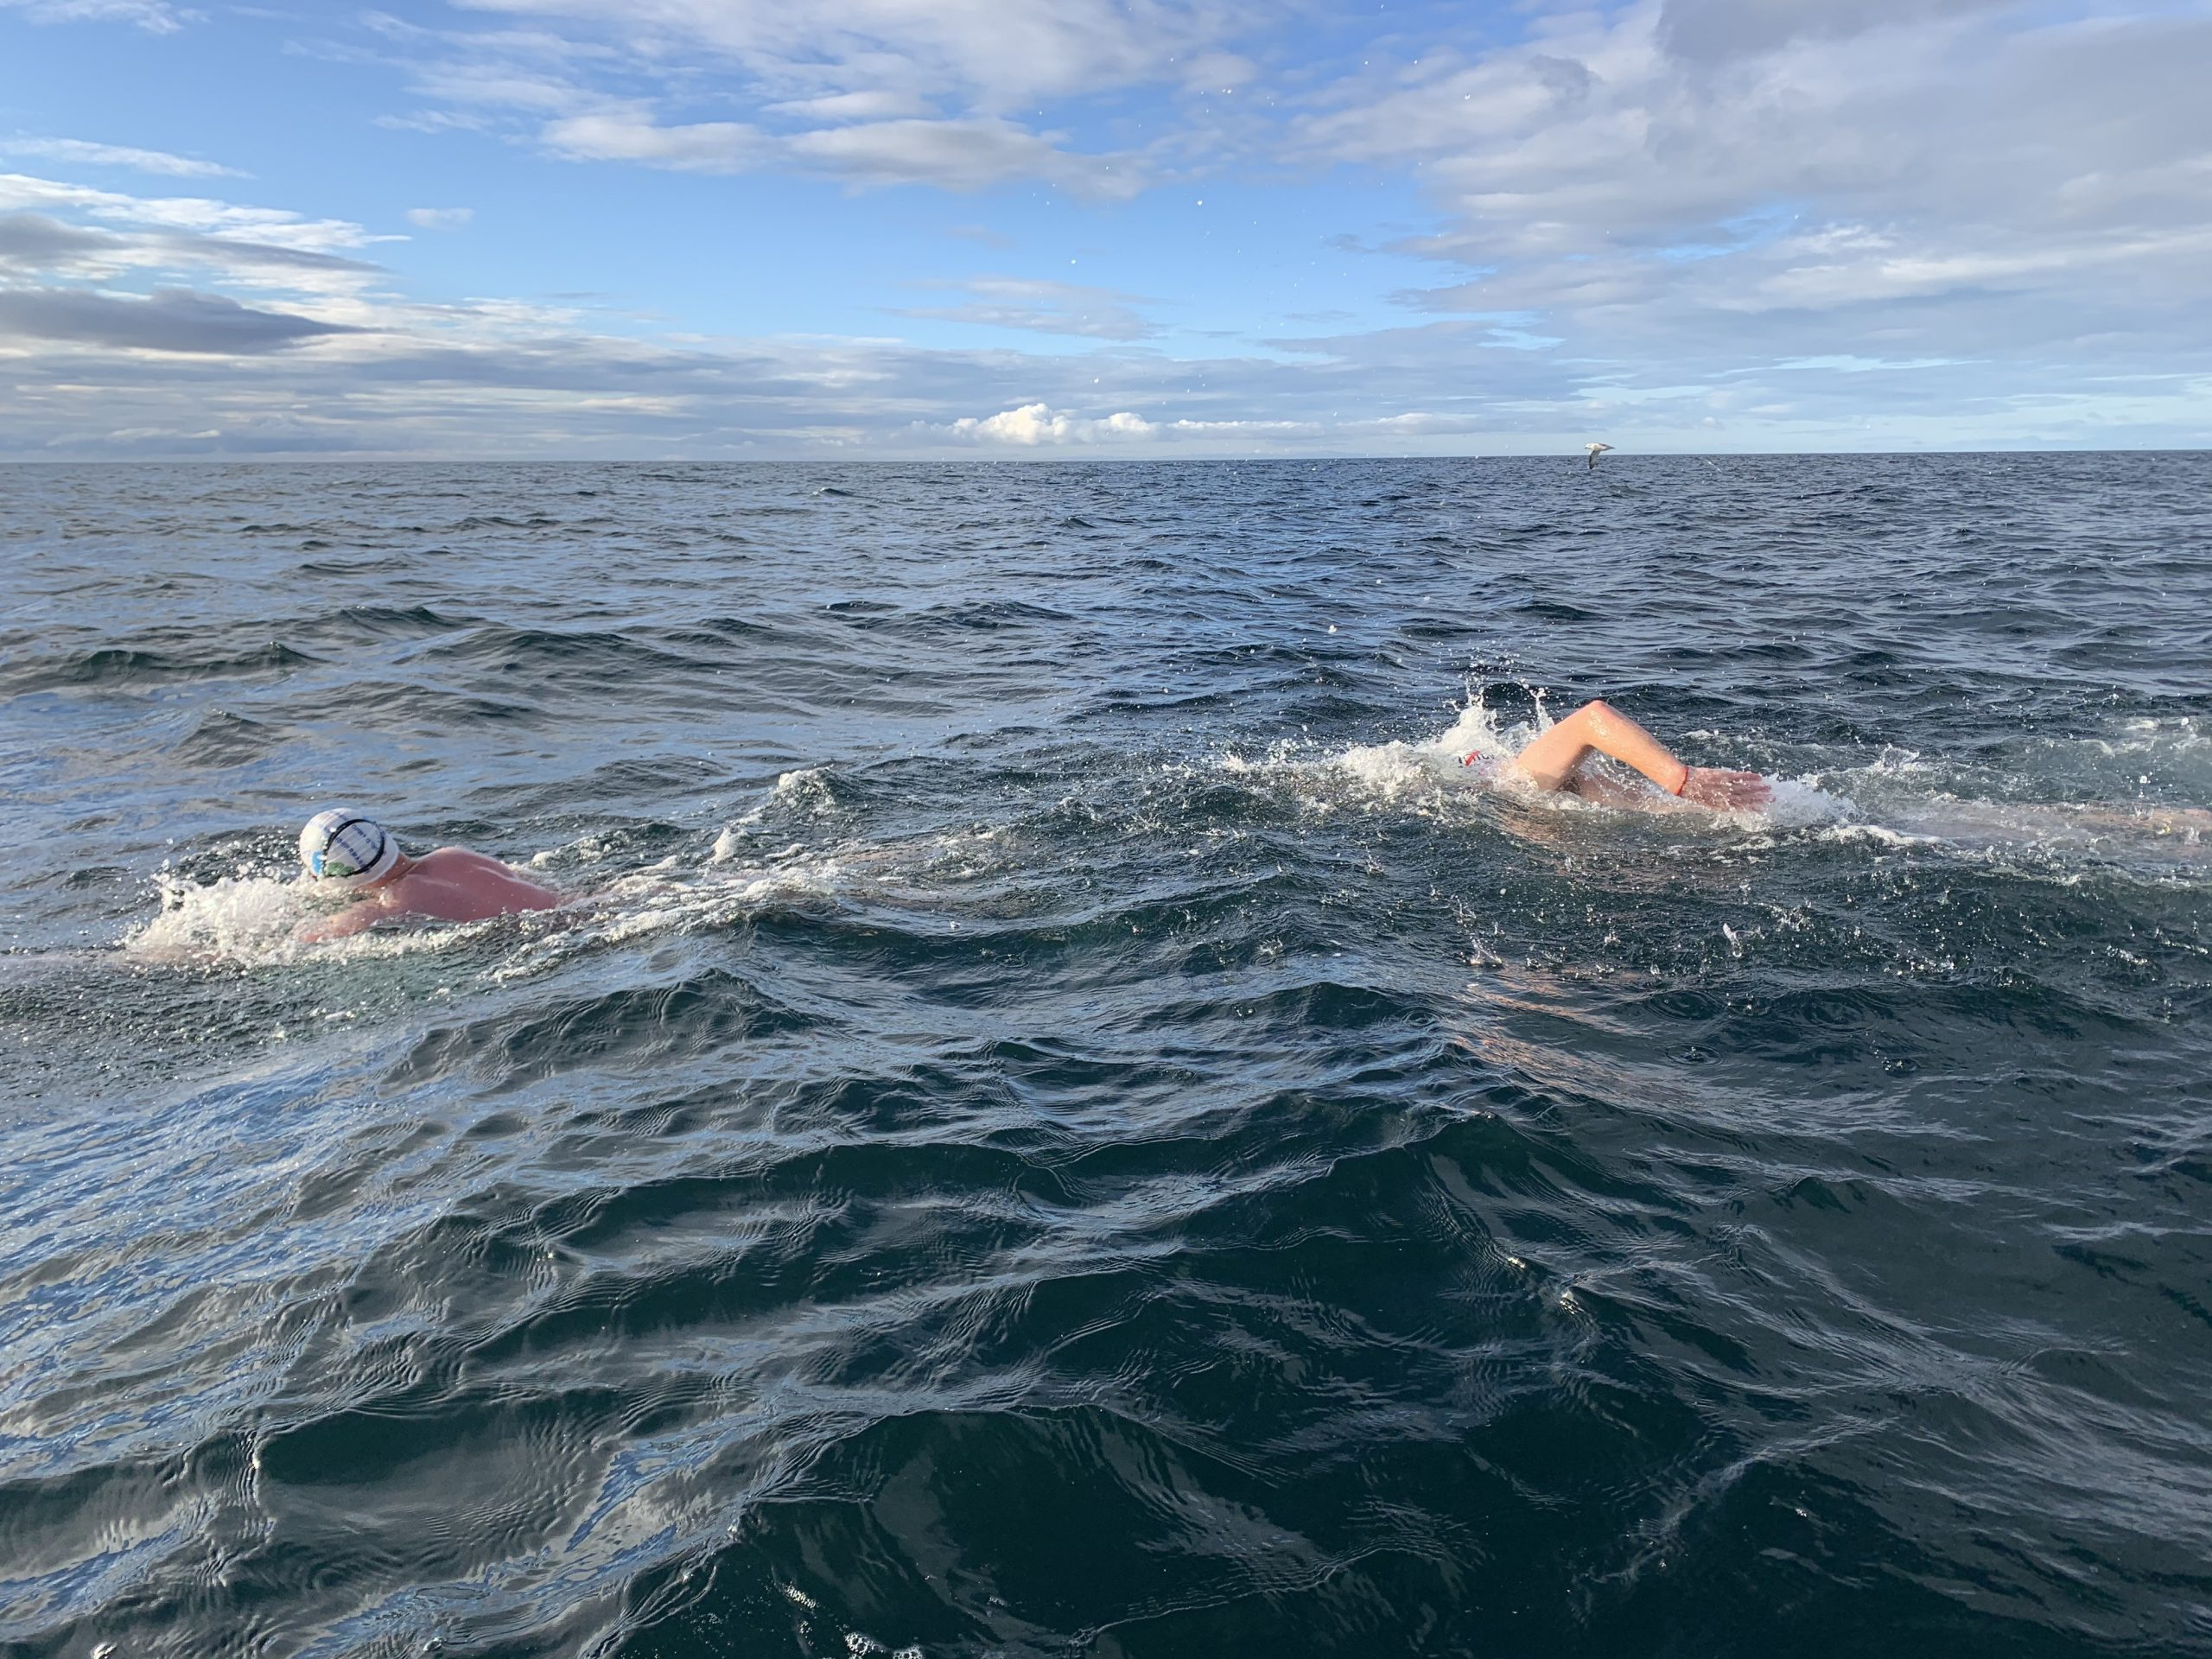 OA Giants setting a new North Channel record, 2 August 2020